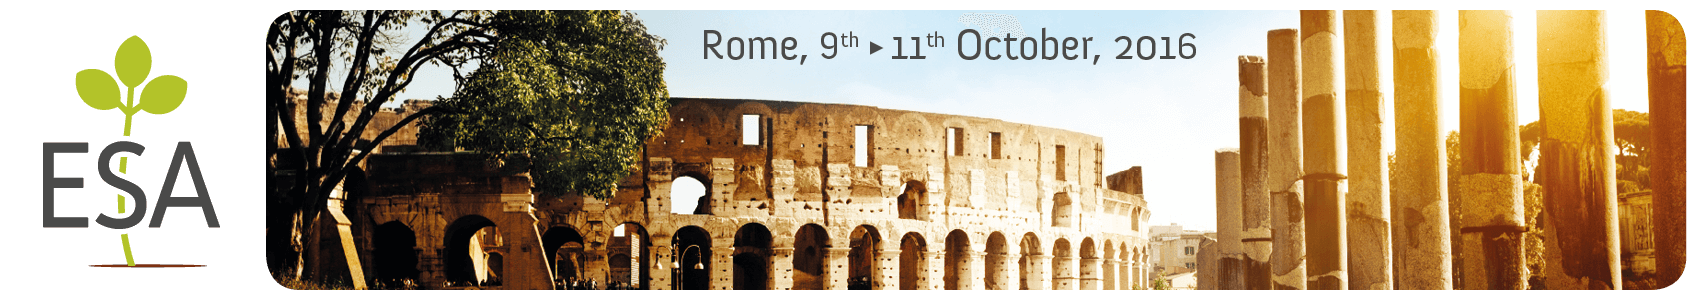 ESA Annual Meeting 2016 - Rome Cavalieri Waldorf Astoria - Rome - Sunday 9  › Tuesday 11 October 2016